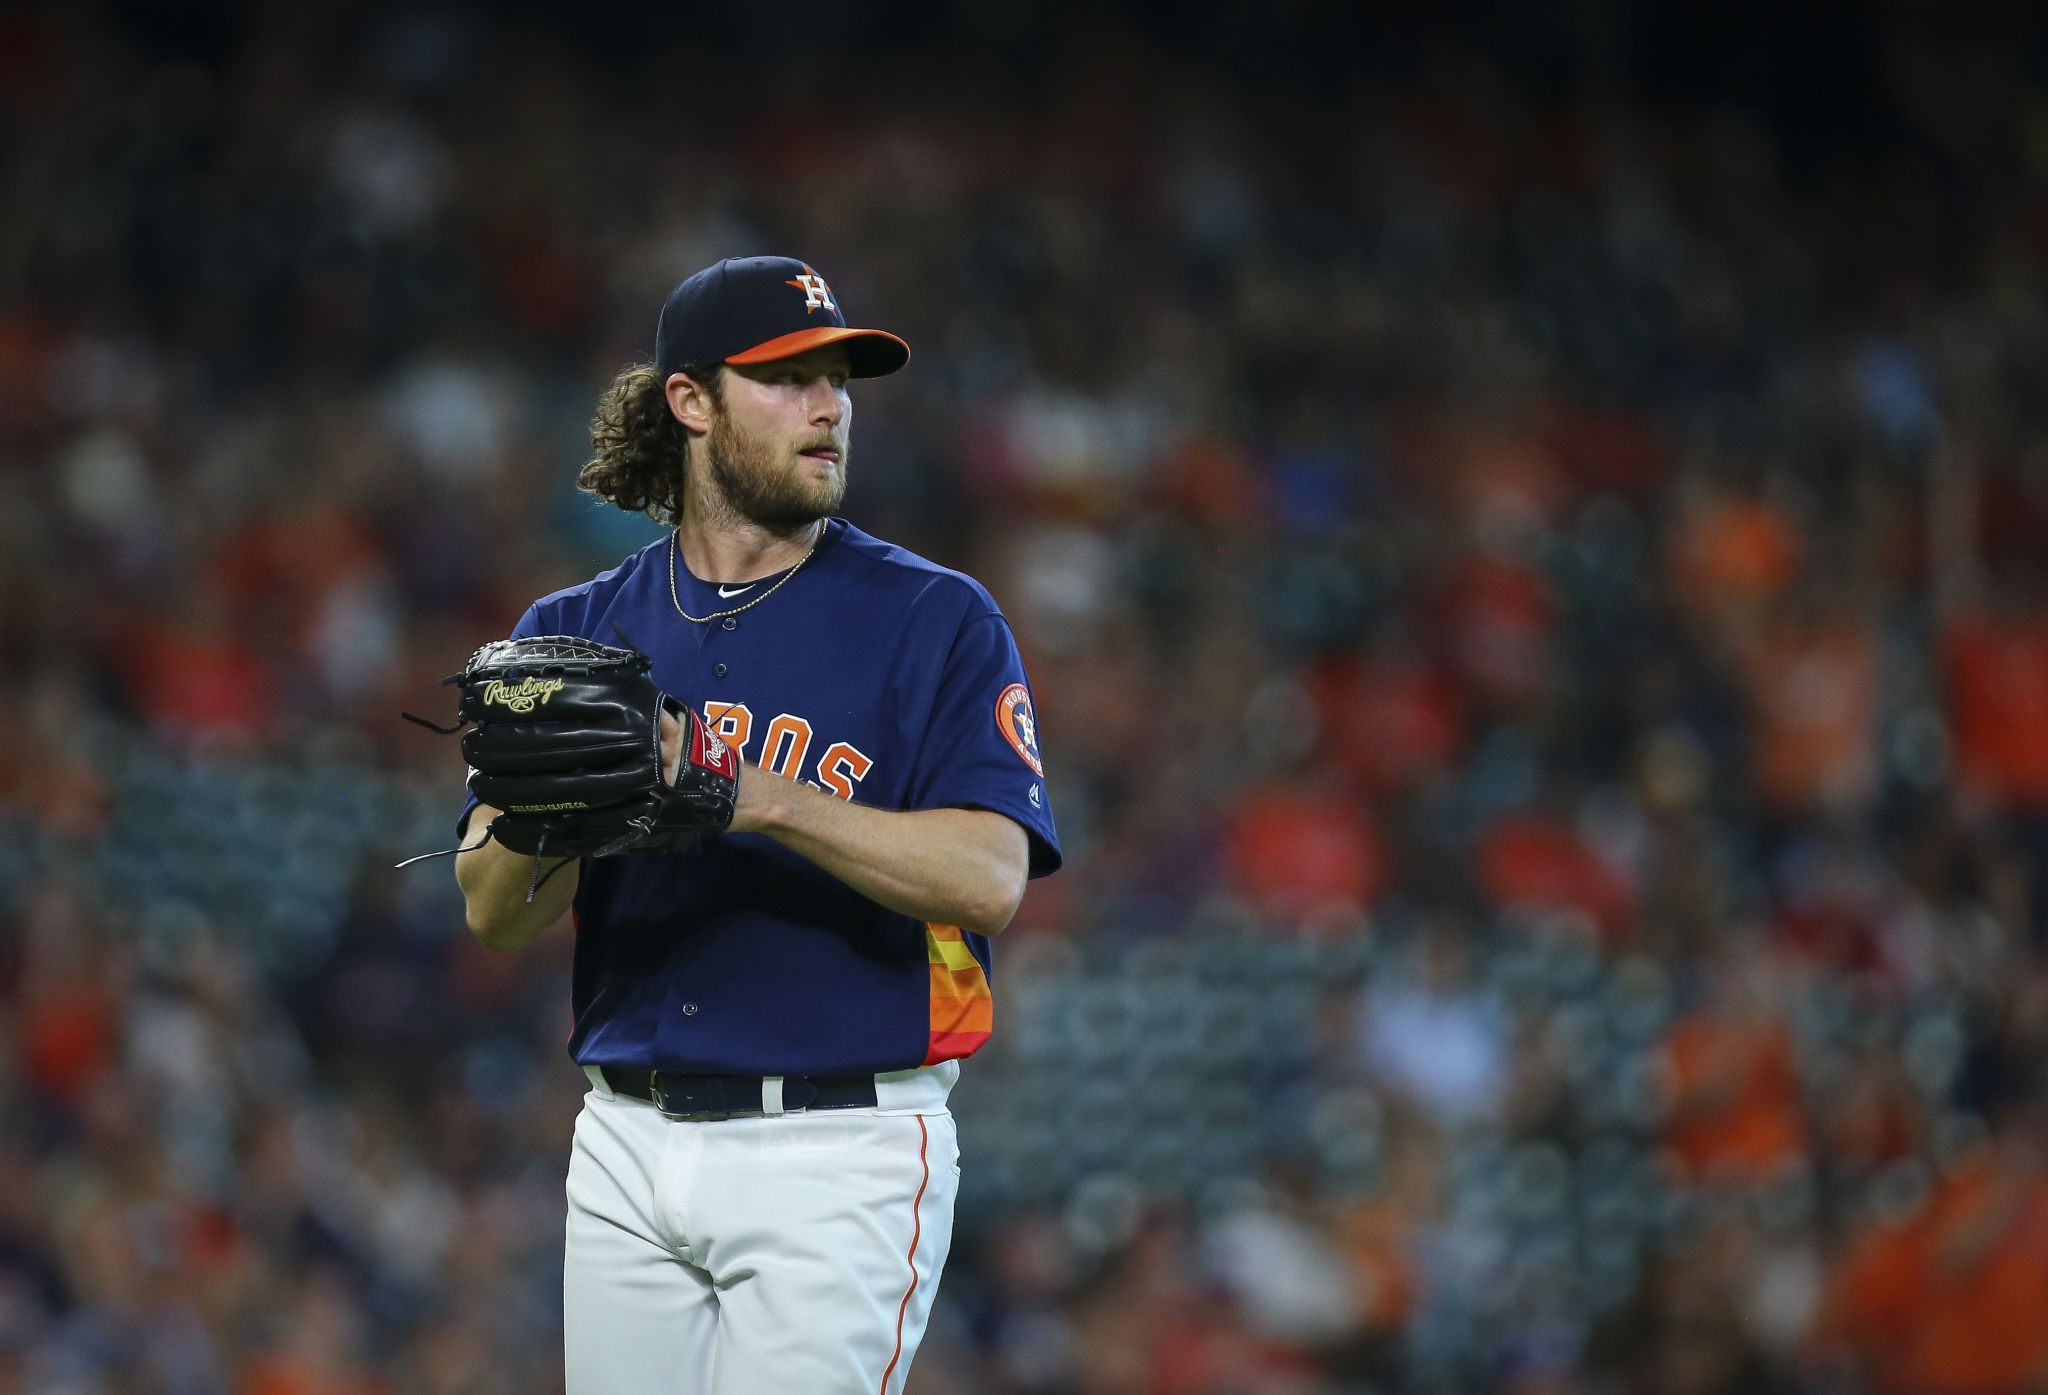 Managing down time not a concern with Astros' Gerrit Cole